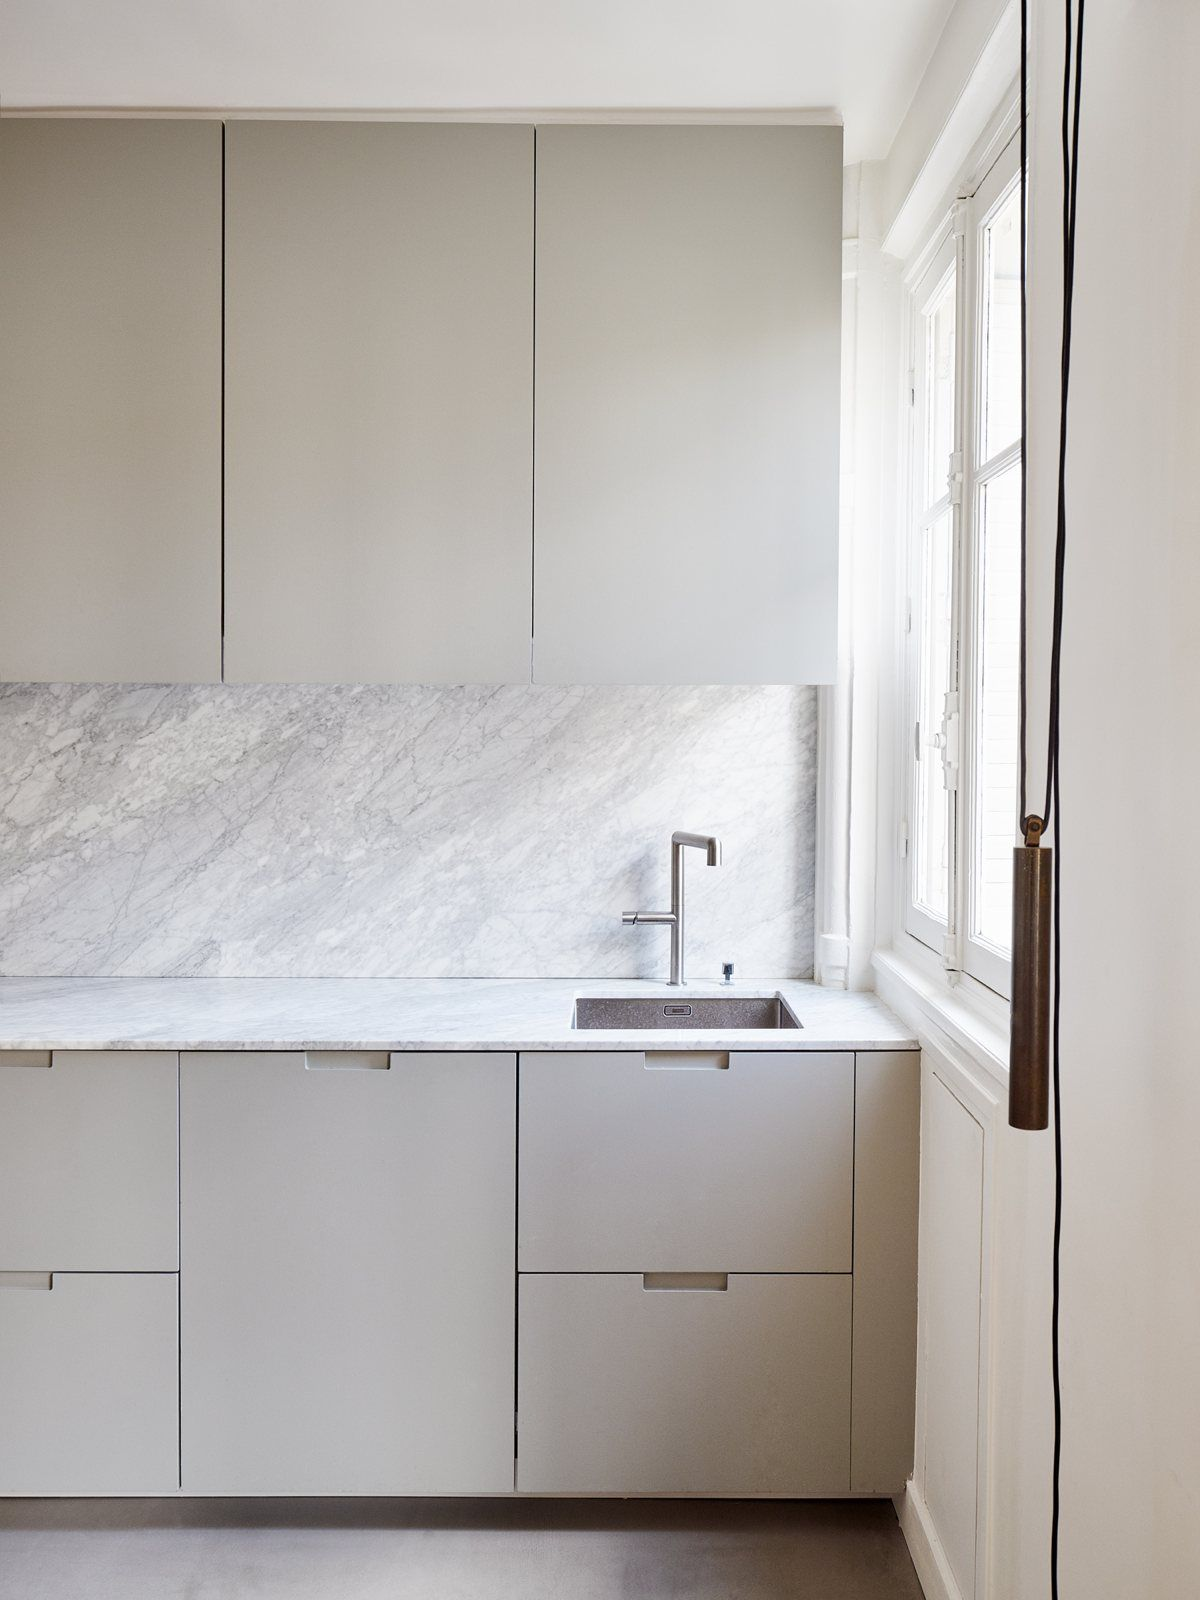 Hubert by Septembre | Pinterest | Marbles, Kitchens and Interiors